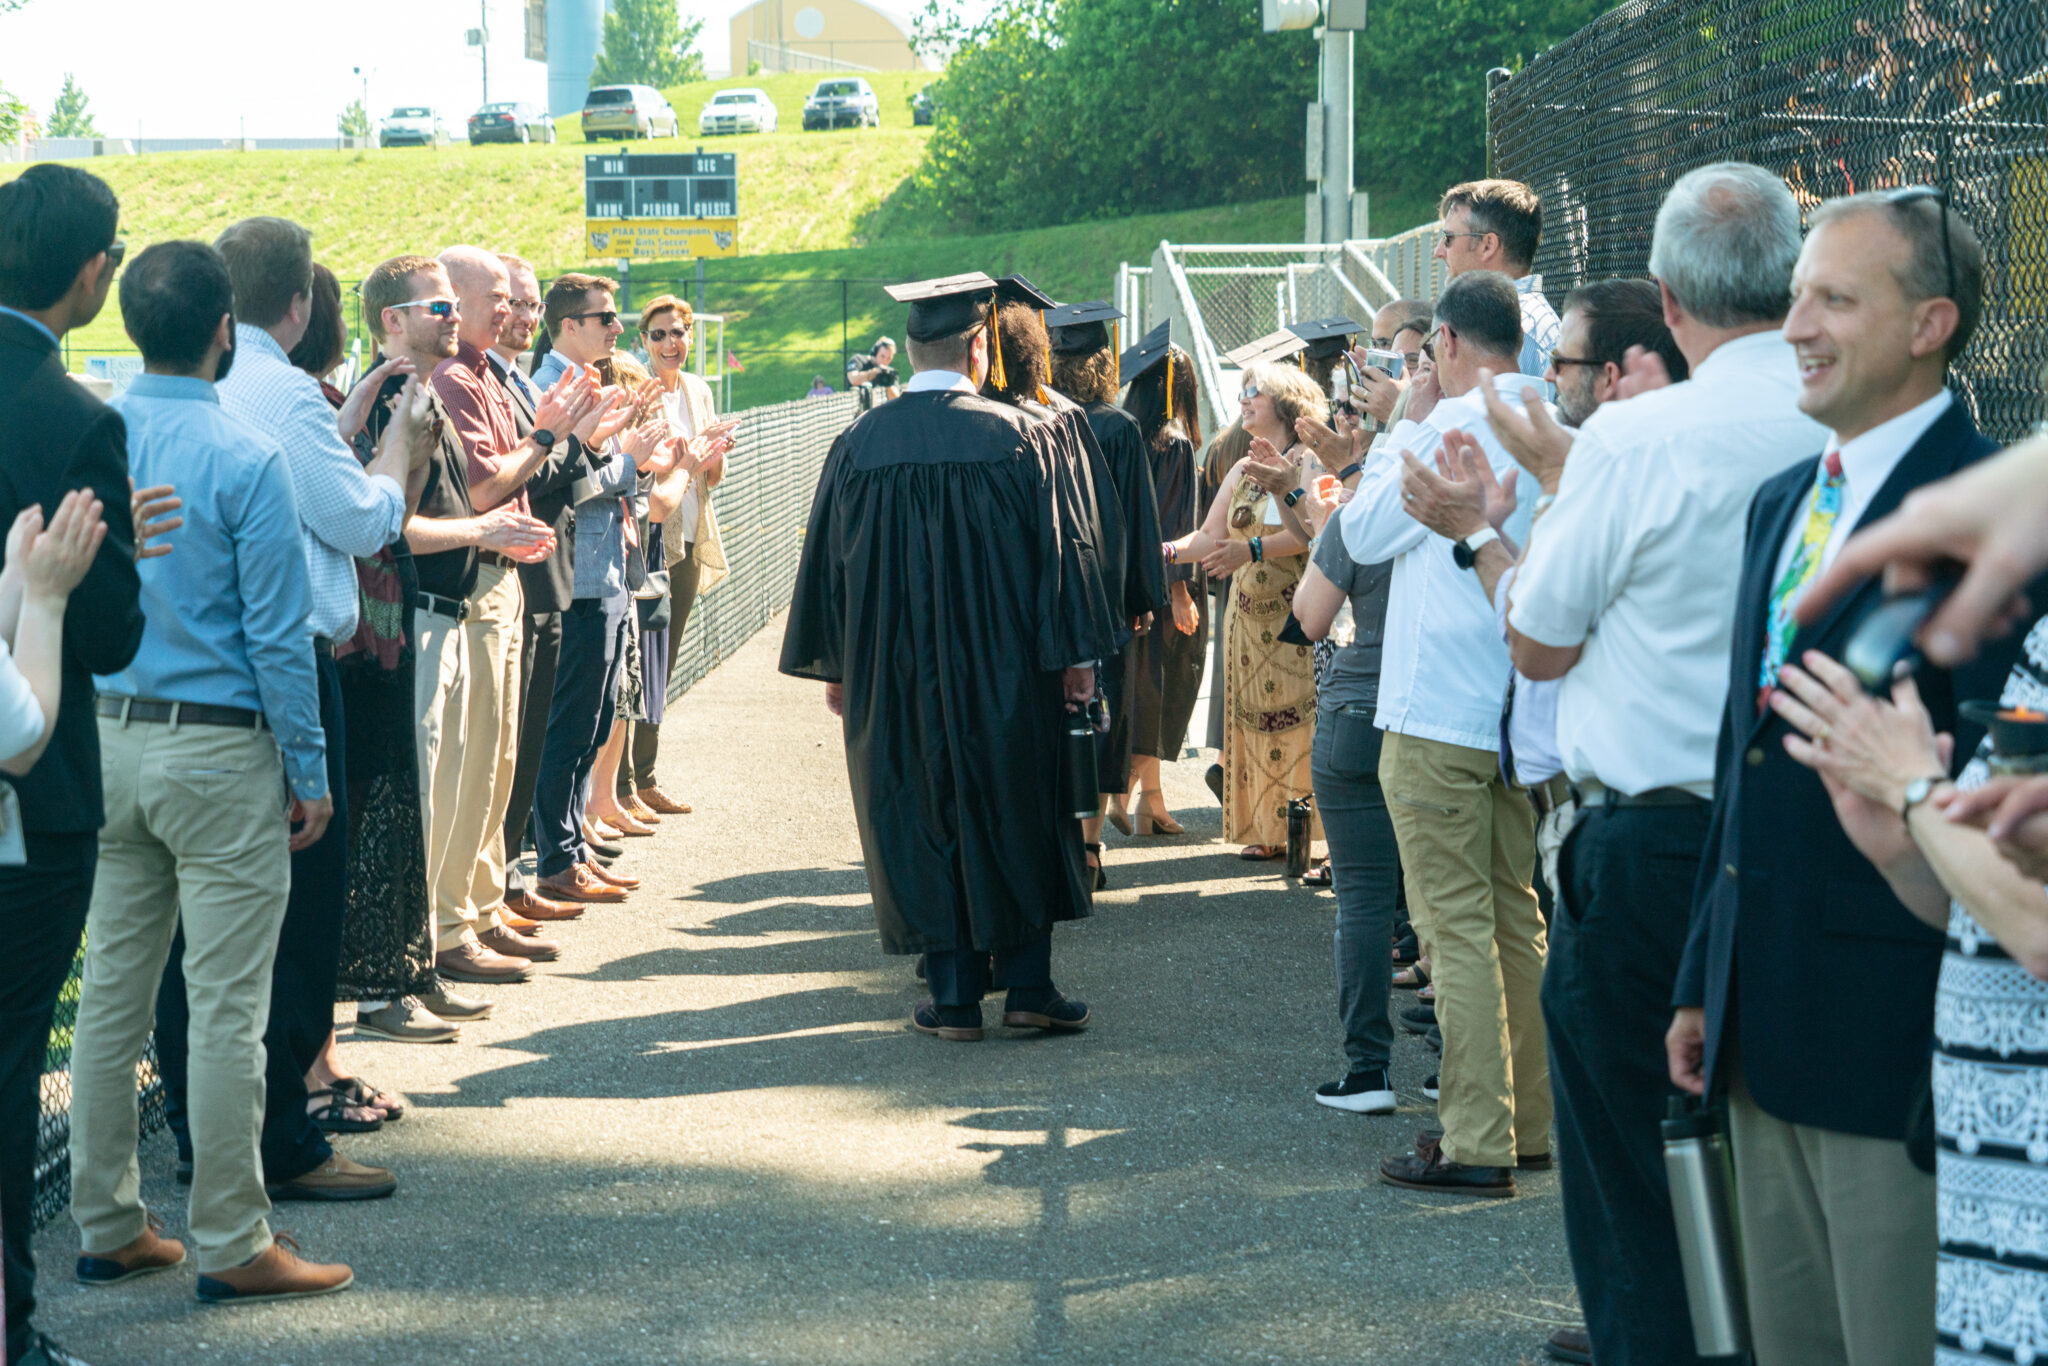 graduates walking into commencement in tunnel of teachers